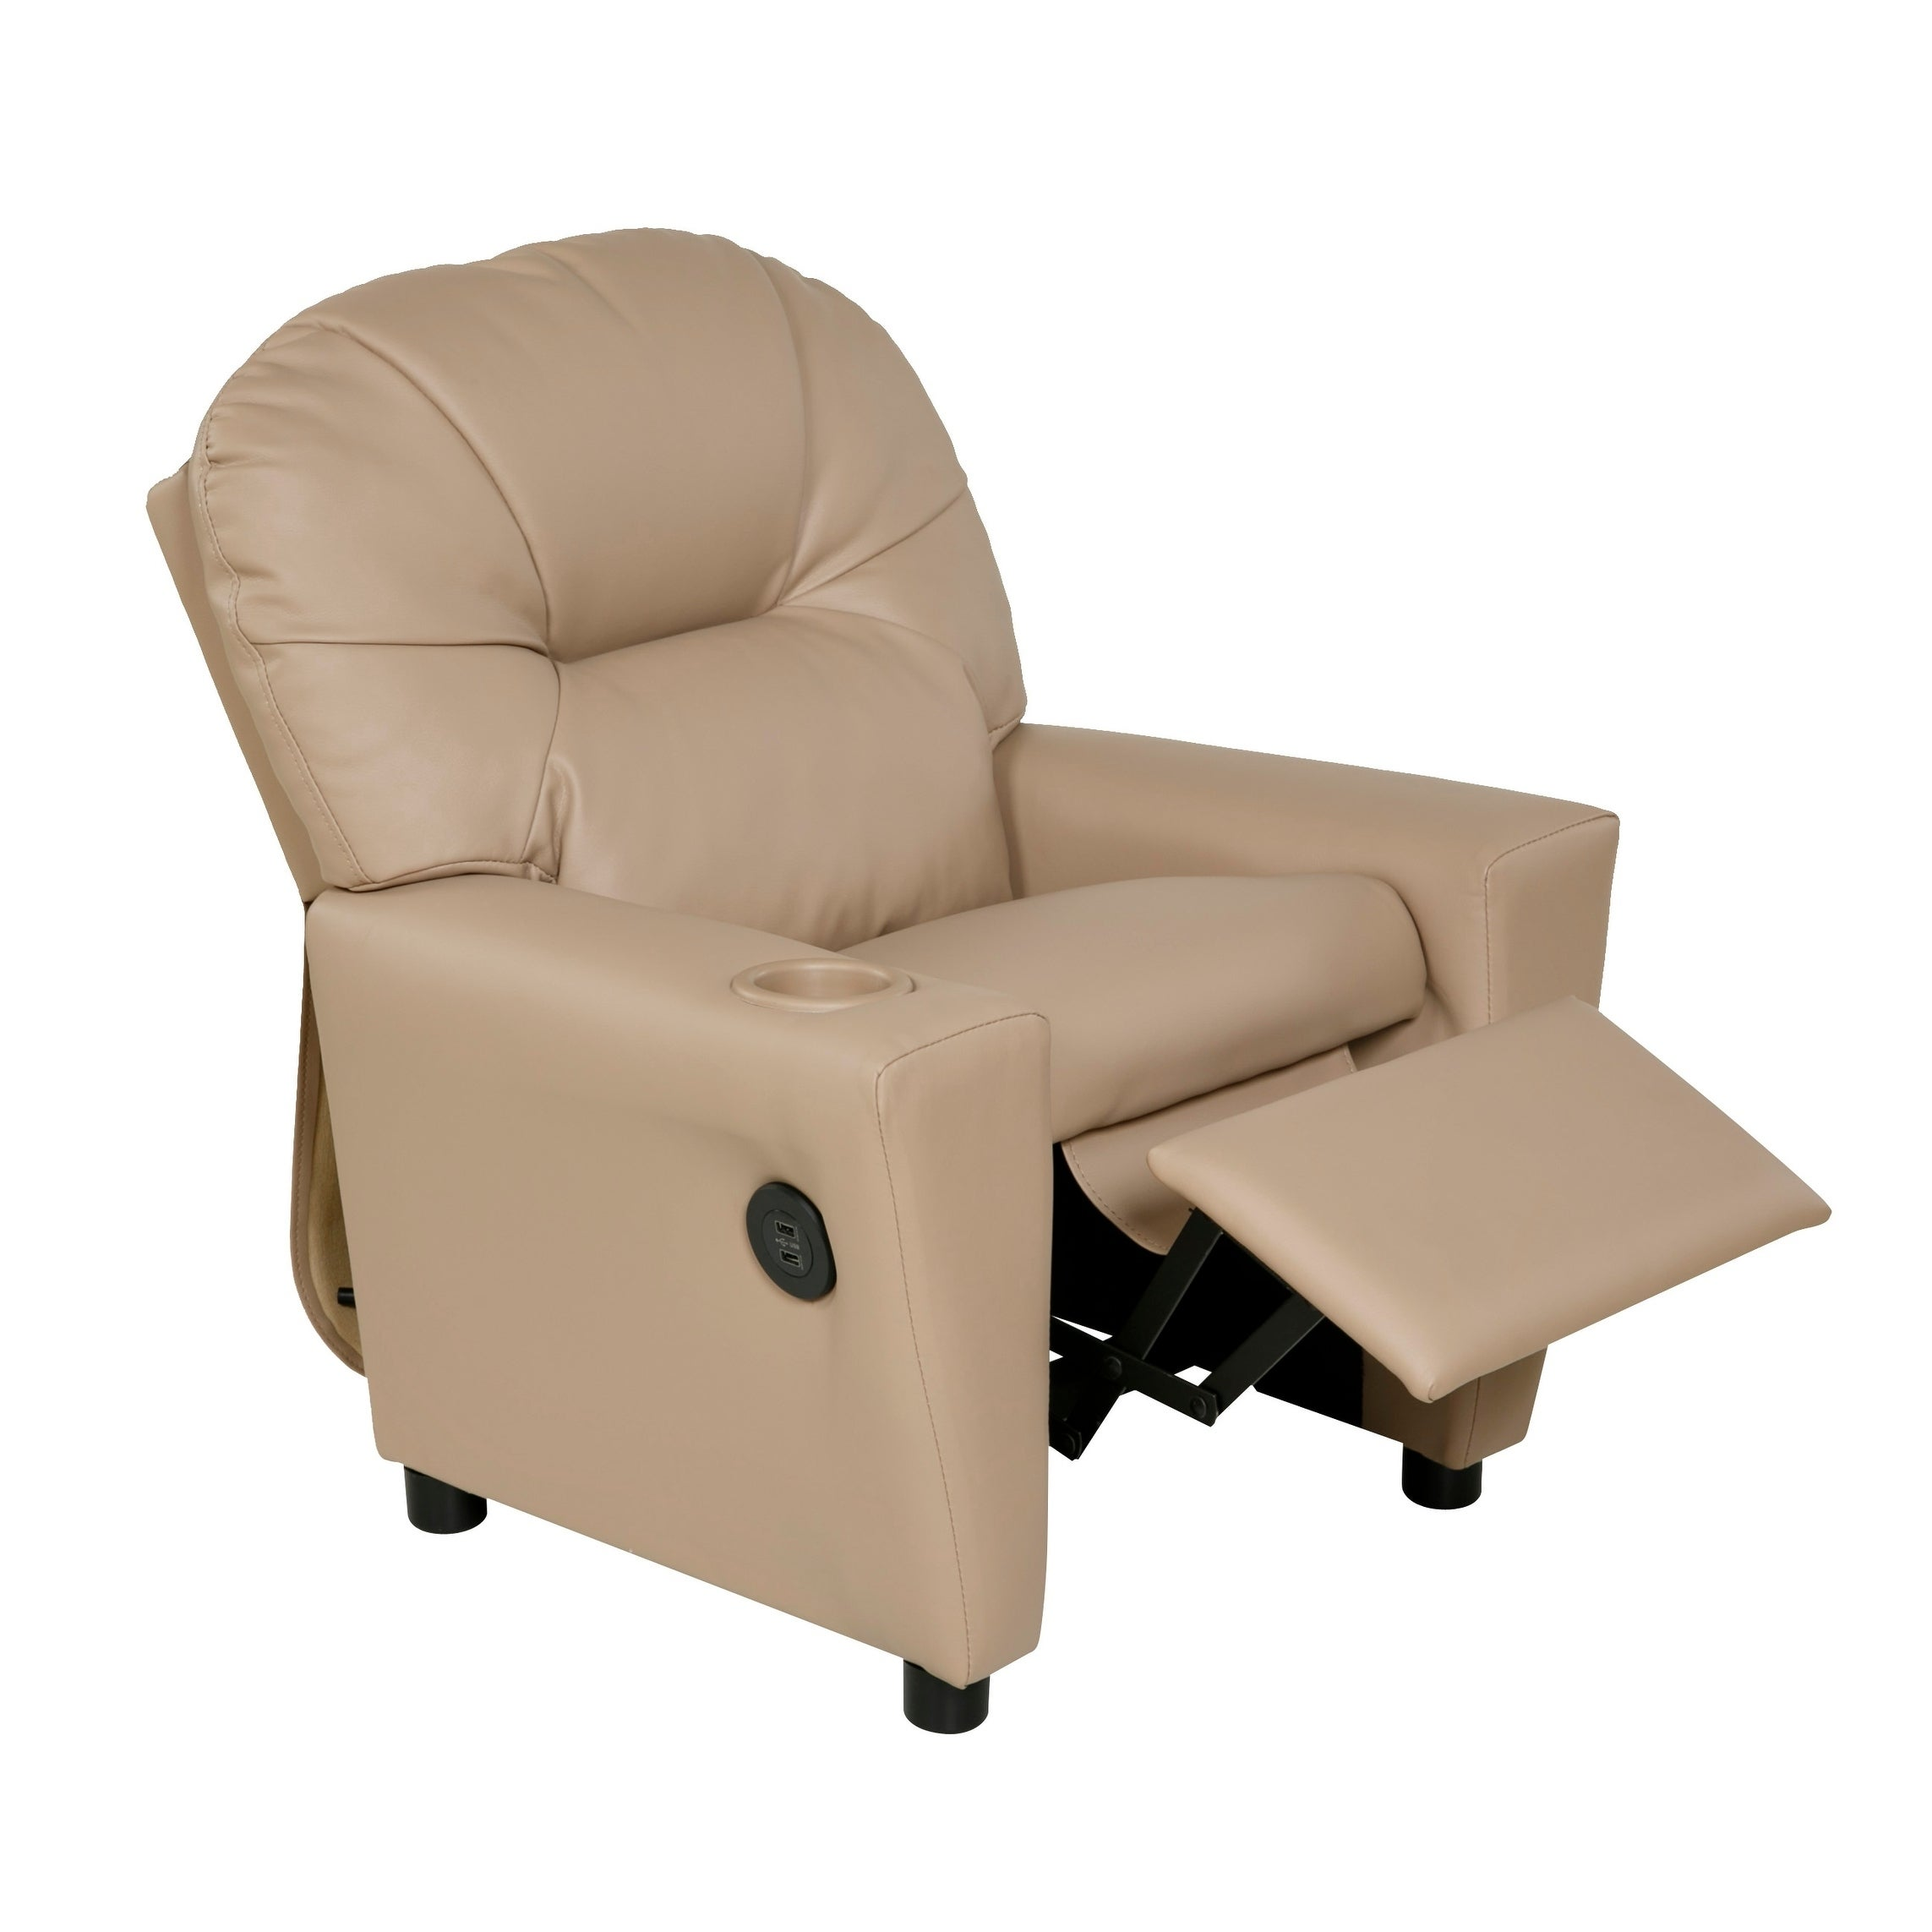 Superieur Shop Relaxzen 60 7100KU Youth Recliner With Cupholder And Dual USB   Free  Shipping Today   Overstock.com   18182920